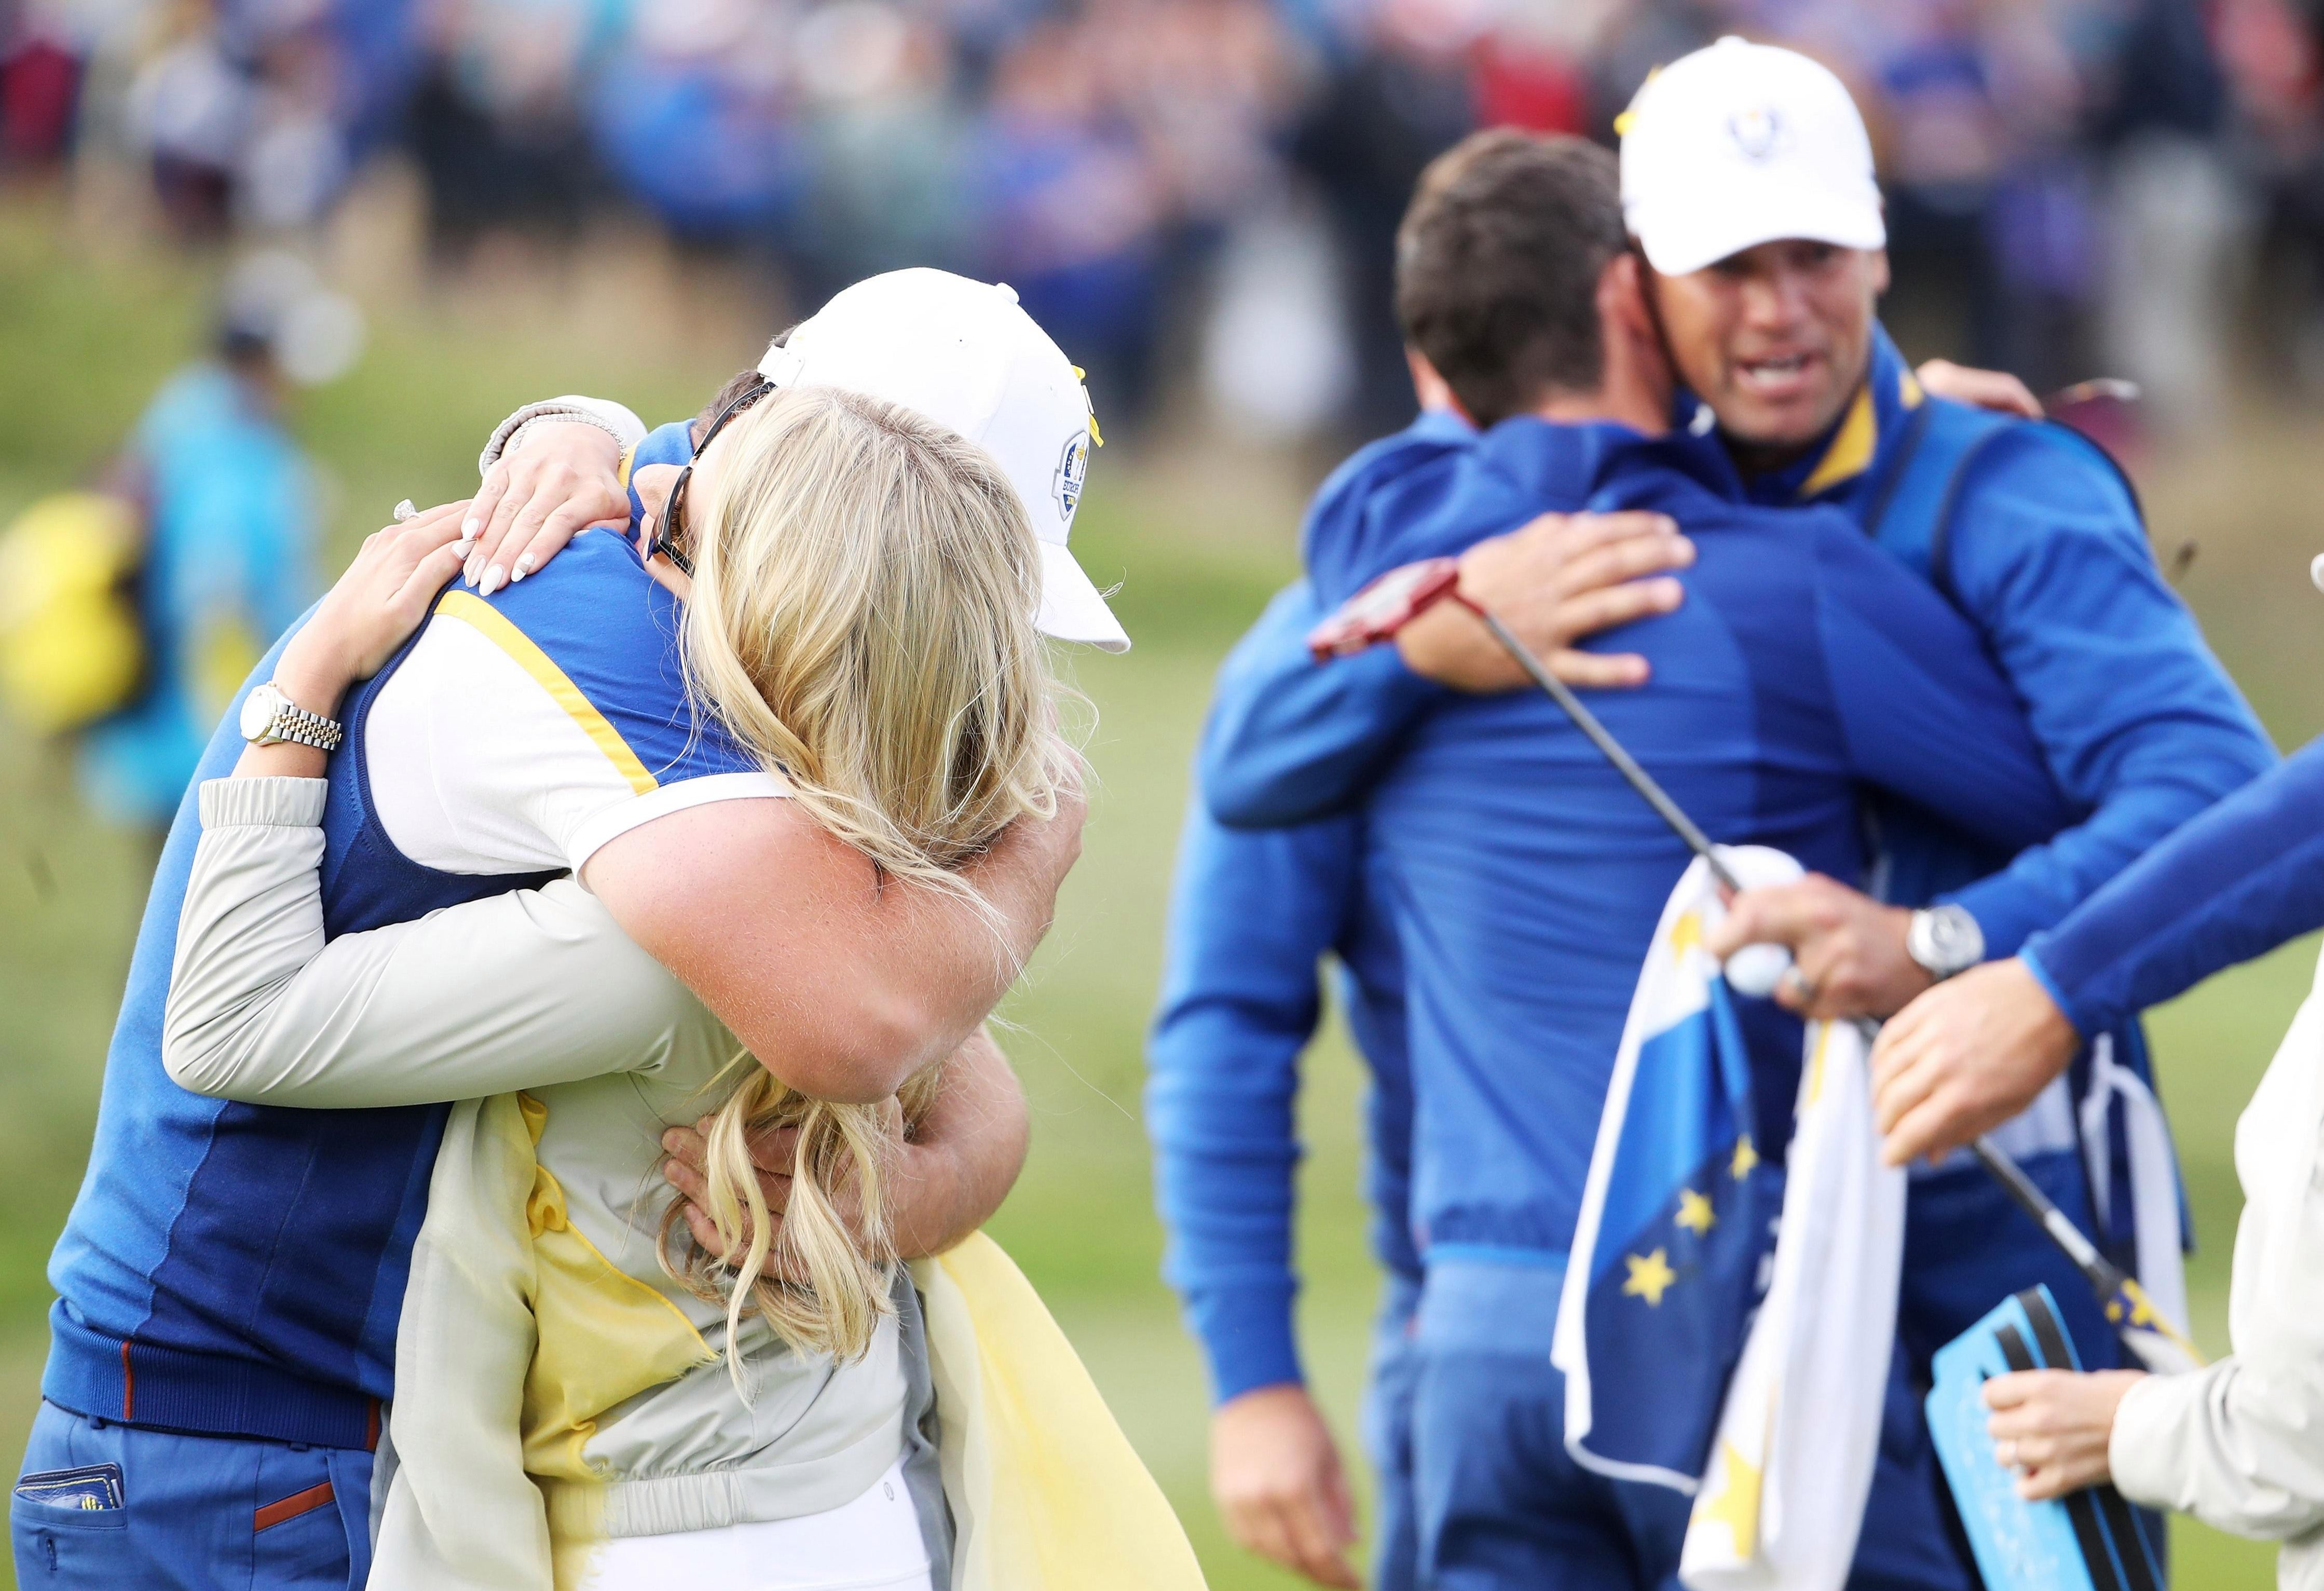 It was hugs all round as the Ryder Cup came back to Europe